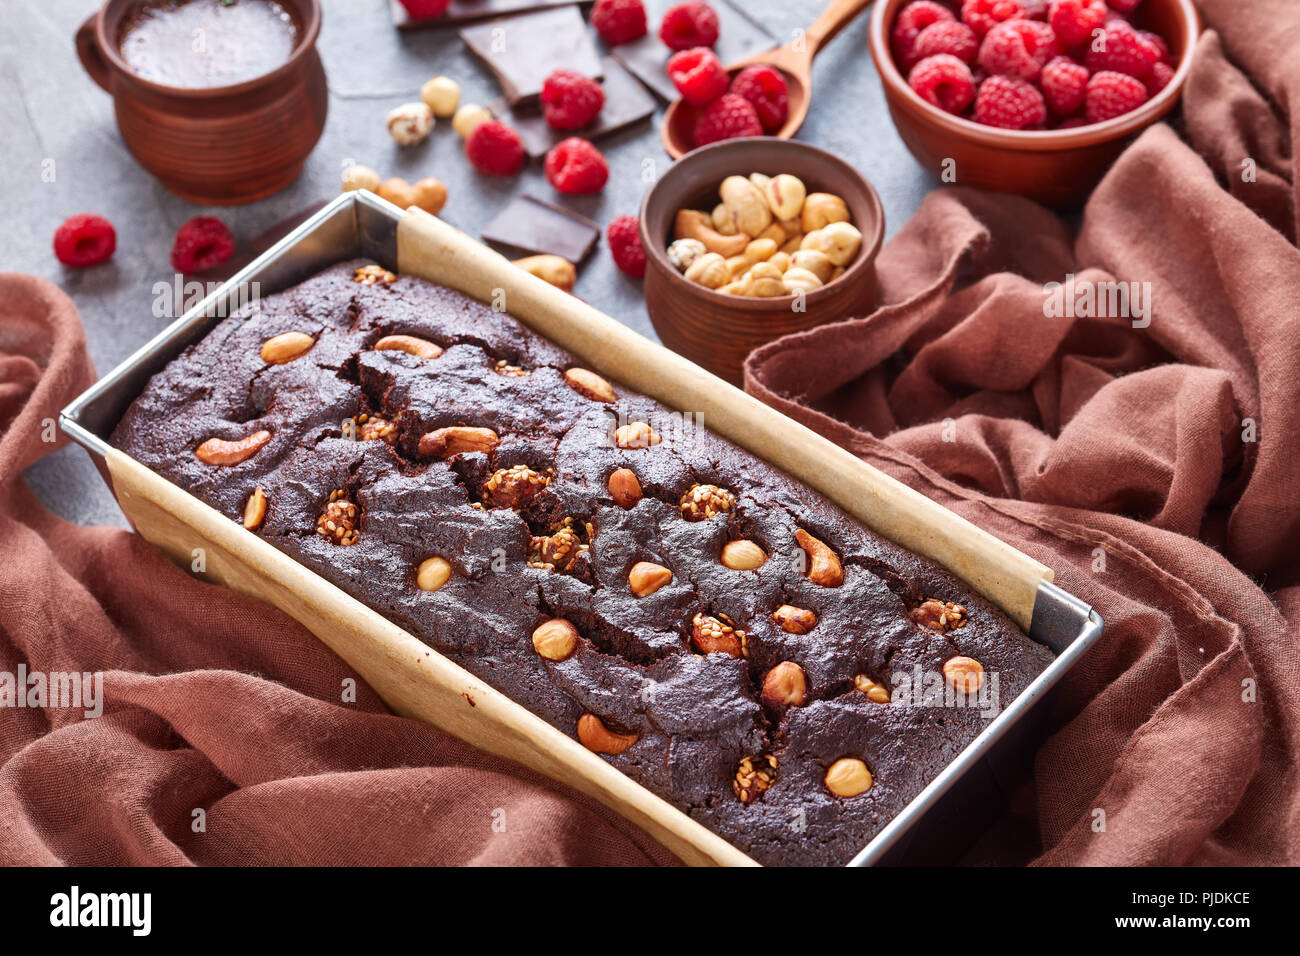 close-up of chocolate buckwheat pound cake with nuts and raspberries in a metal baking mold on a concrete table with cup of coffee and brown tissue, v - Stock Image